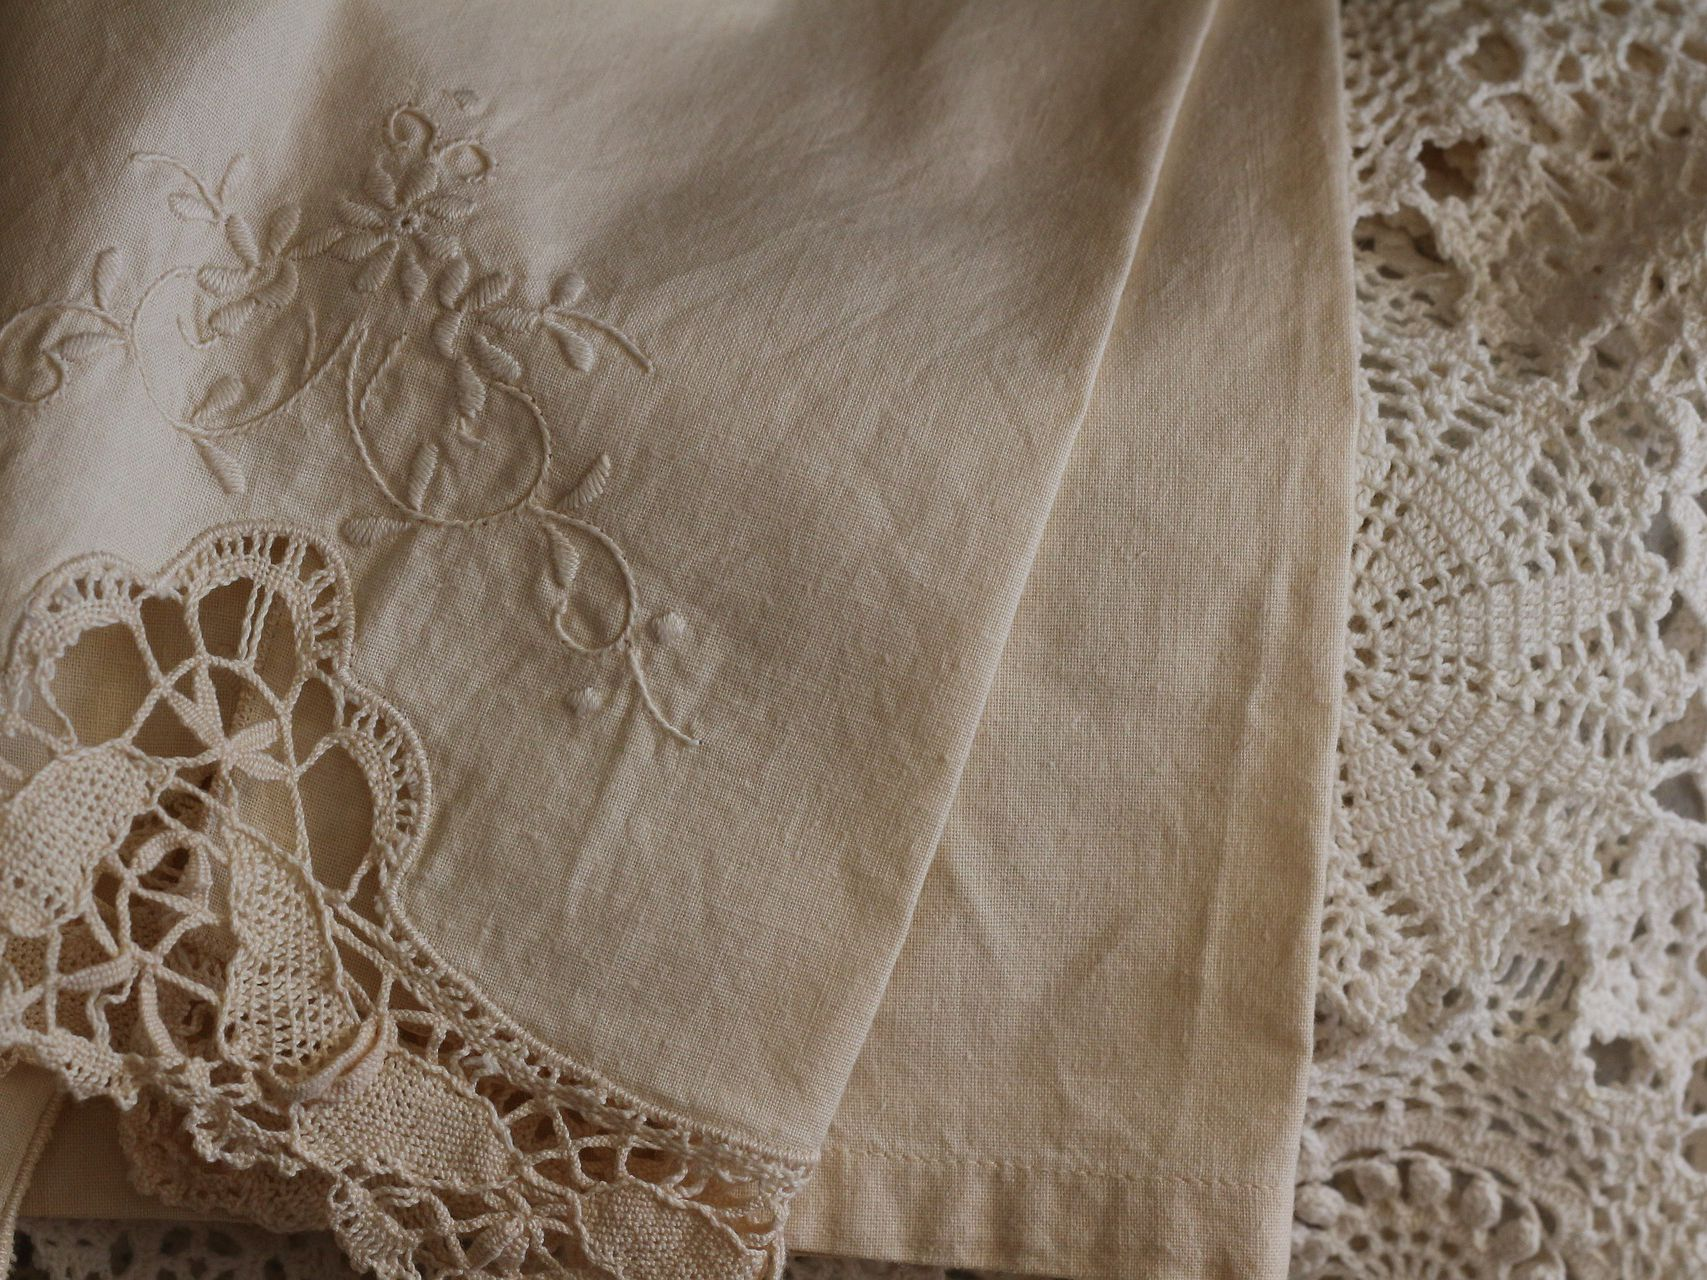 How To Wash And Care For Antique And Vintage Linens